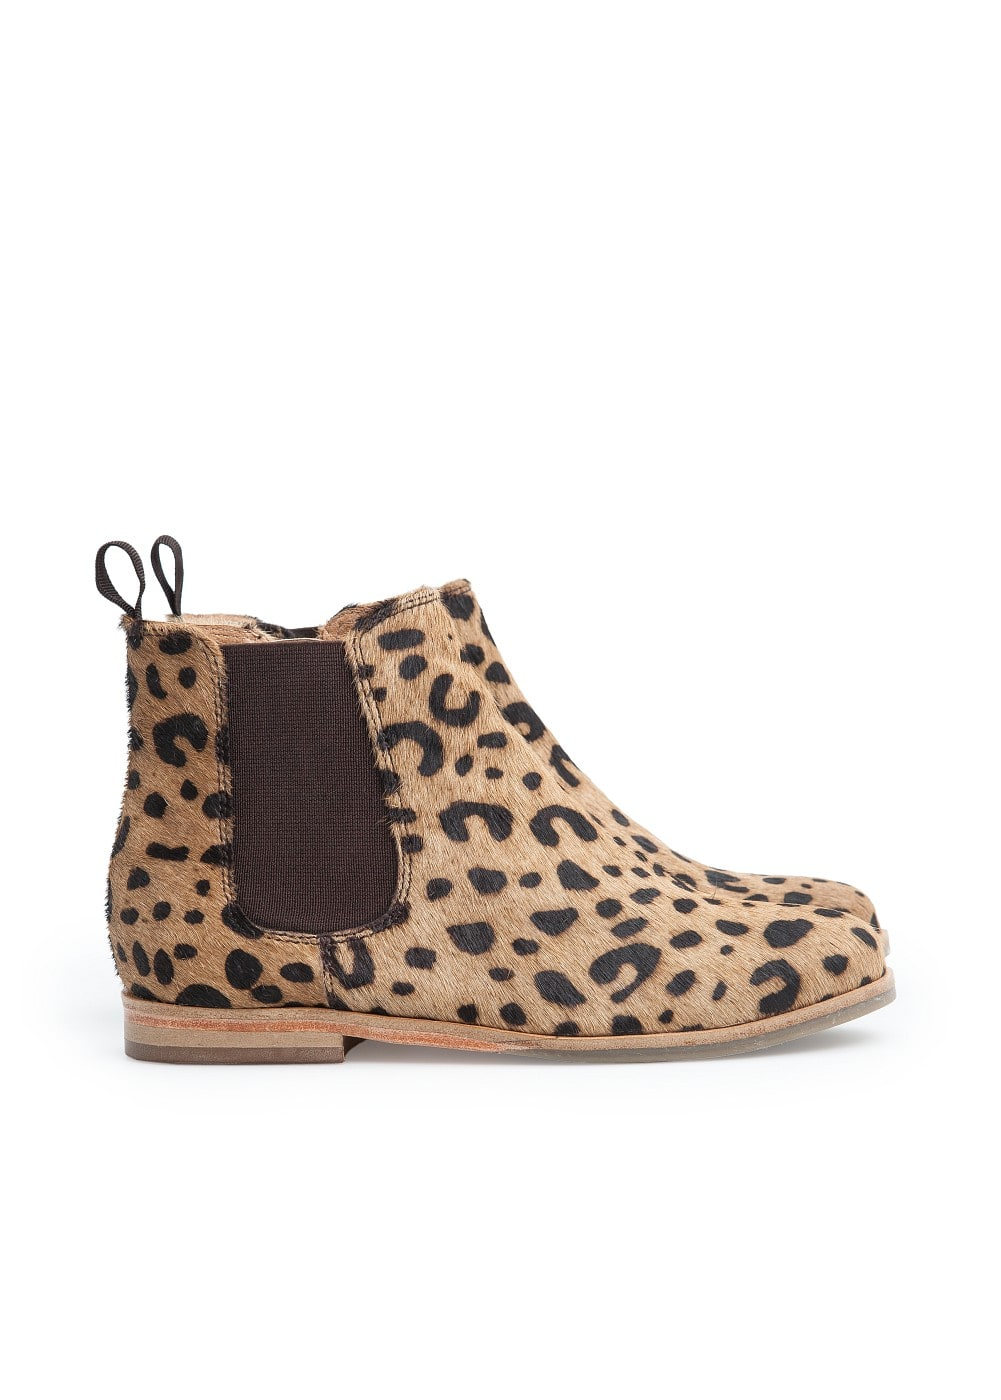 Leopard Chelsea ankle boots